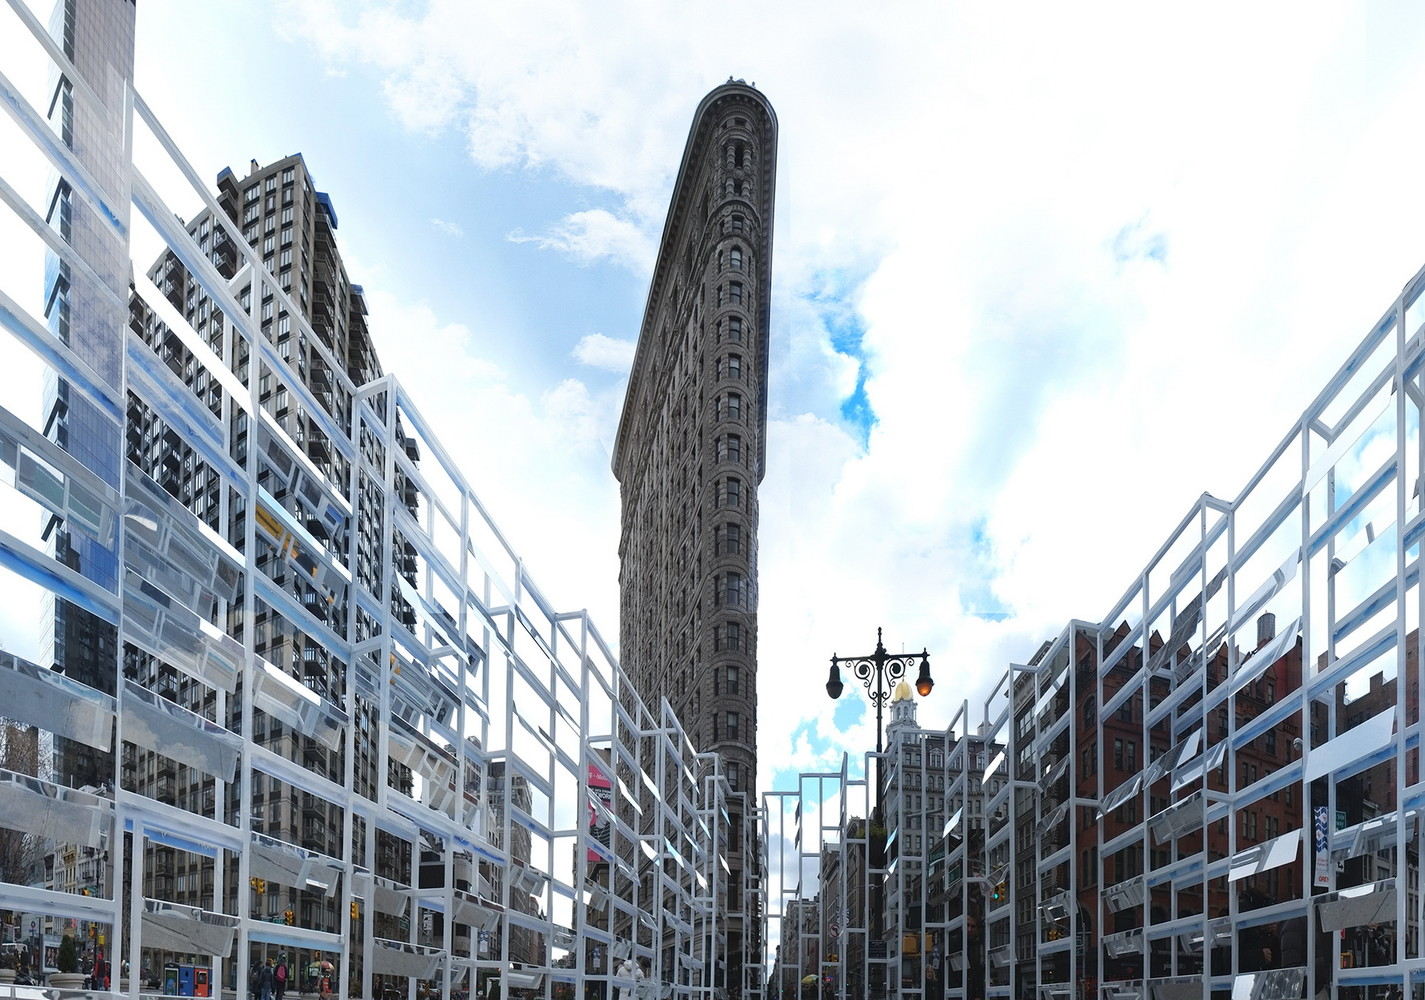 Gallery of INABA Frames Empire State Building with Animated \